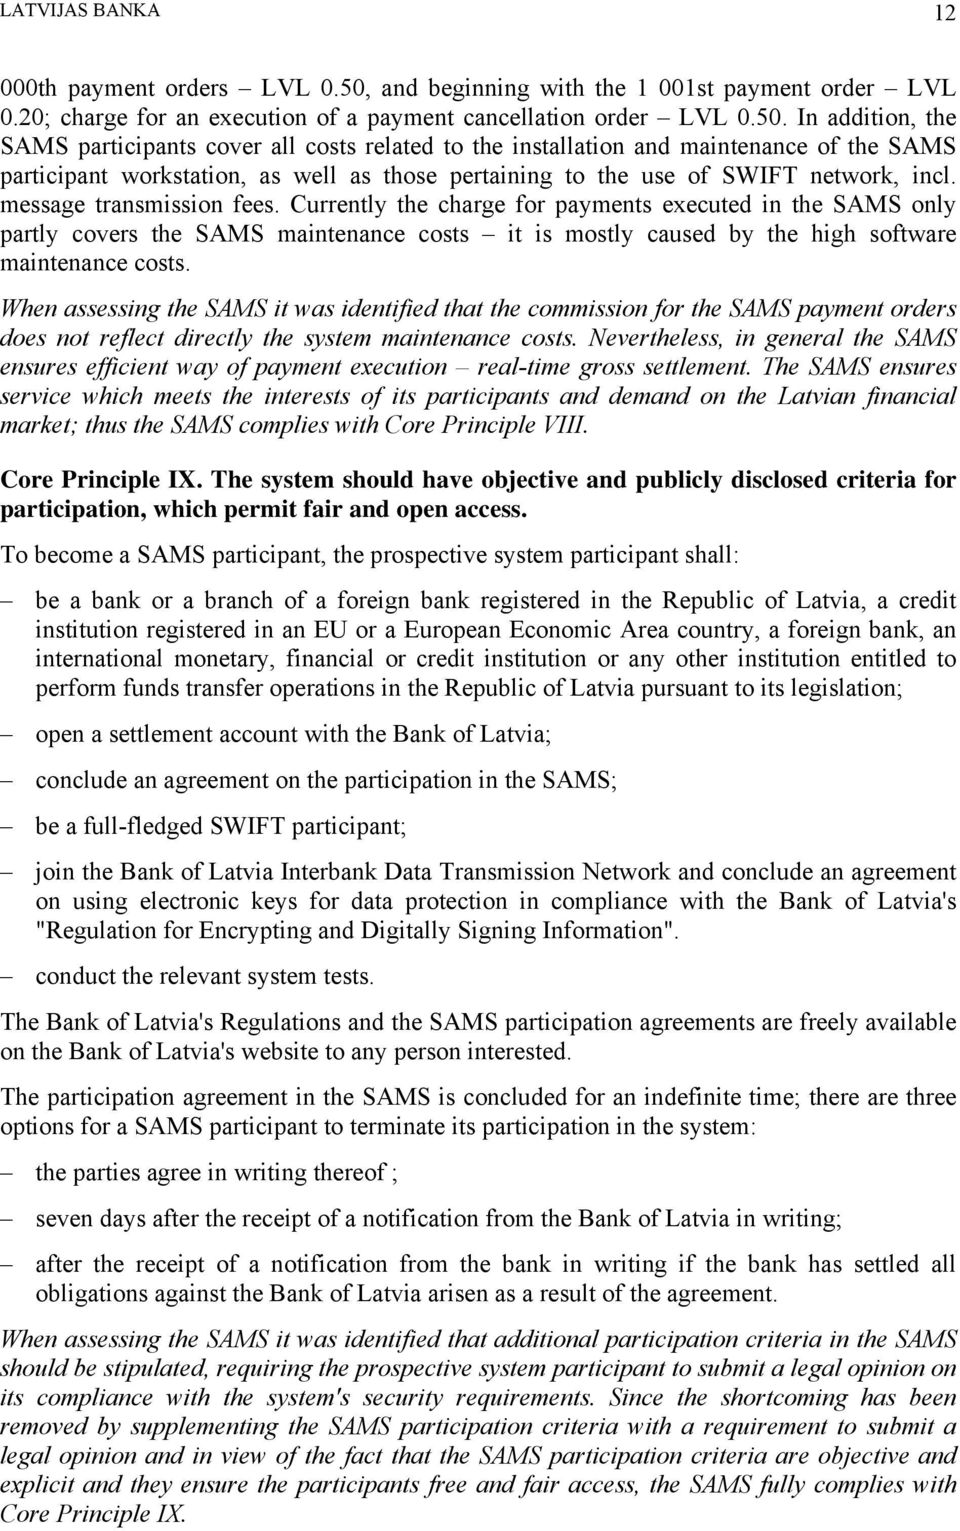 In addition, the SAMS participants cover all costs related to the installation and maintenance of the SAMS participant workstation, as well as those pertaining to the use of SWIFT network, incl.